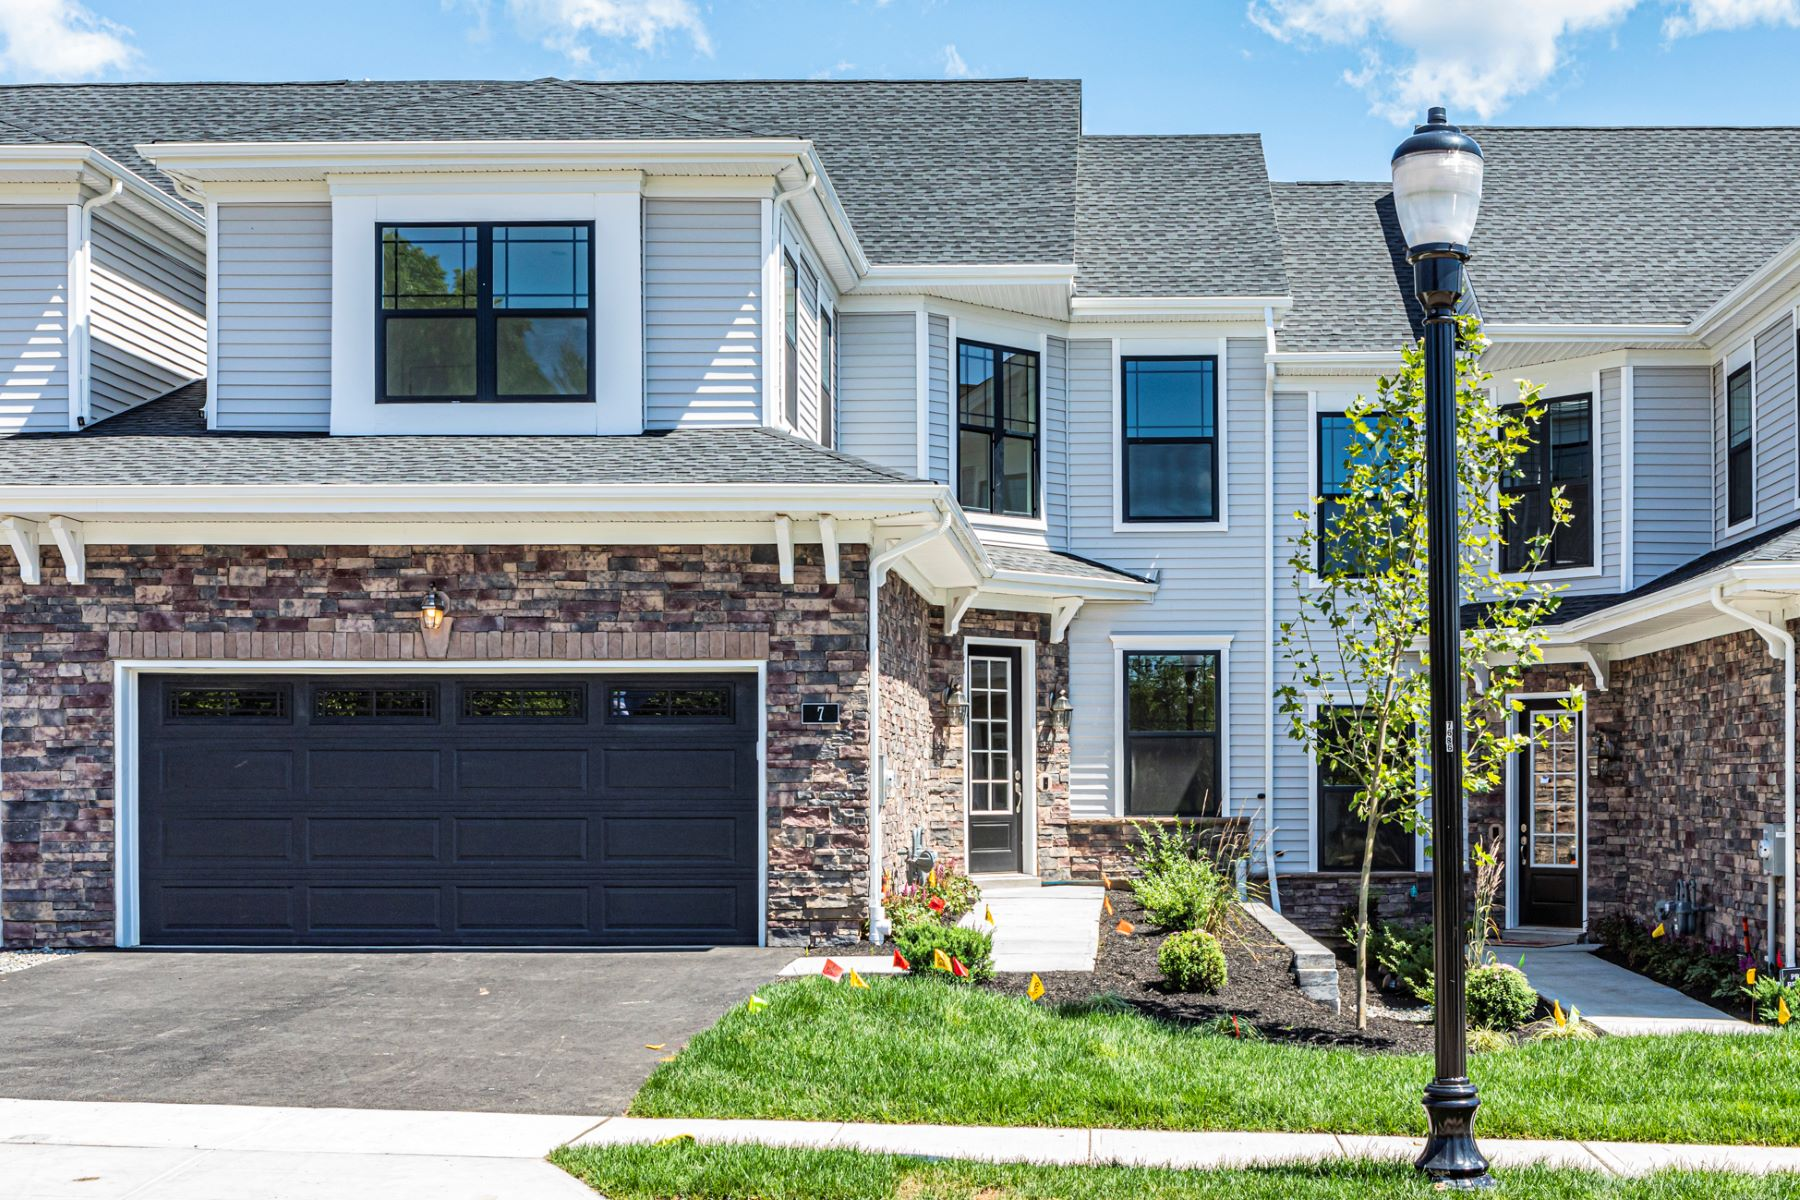 Ease Into Luxury at Cobblestone Creek 15 Dogleg Lane, Lawrenceville, Nueva Jersey 08648 Estados Unidos